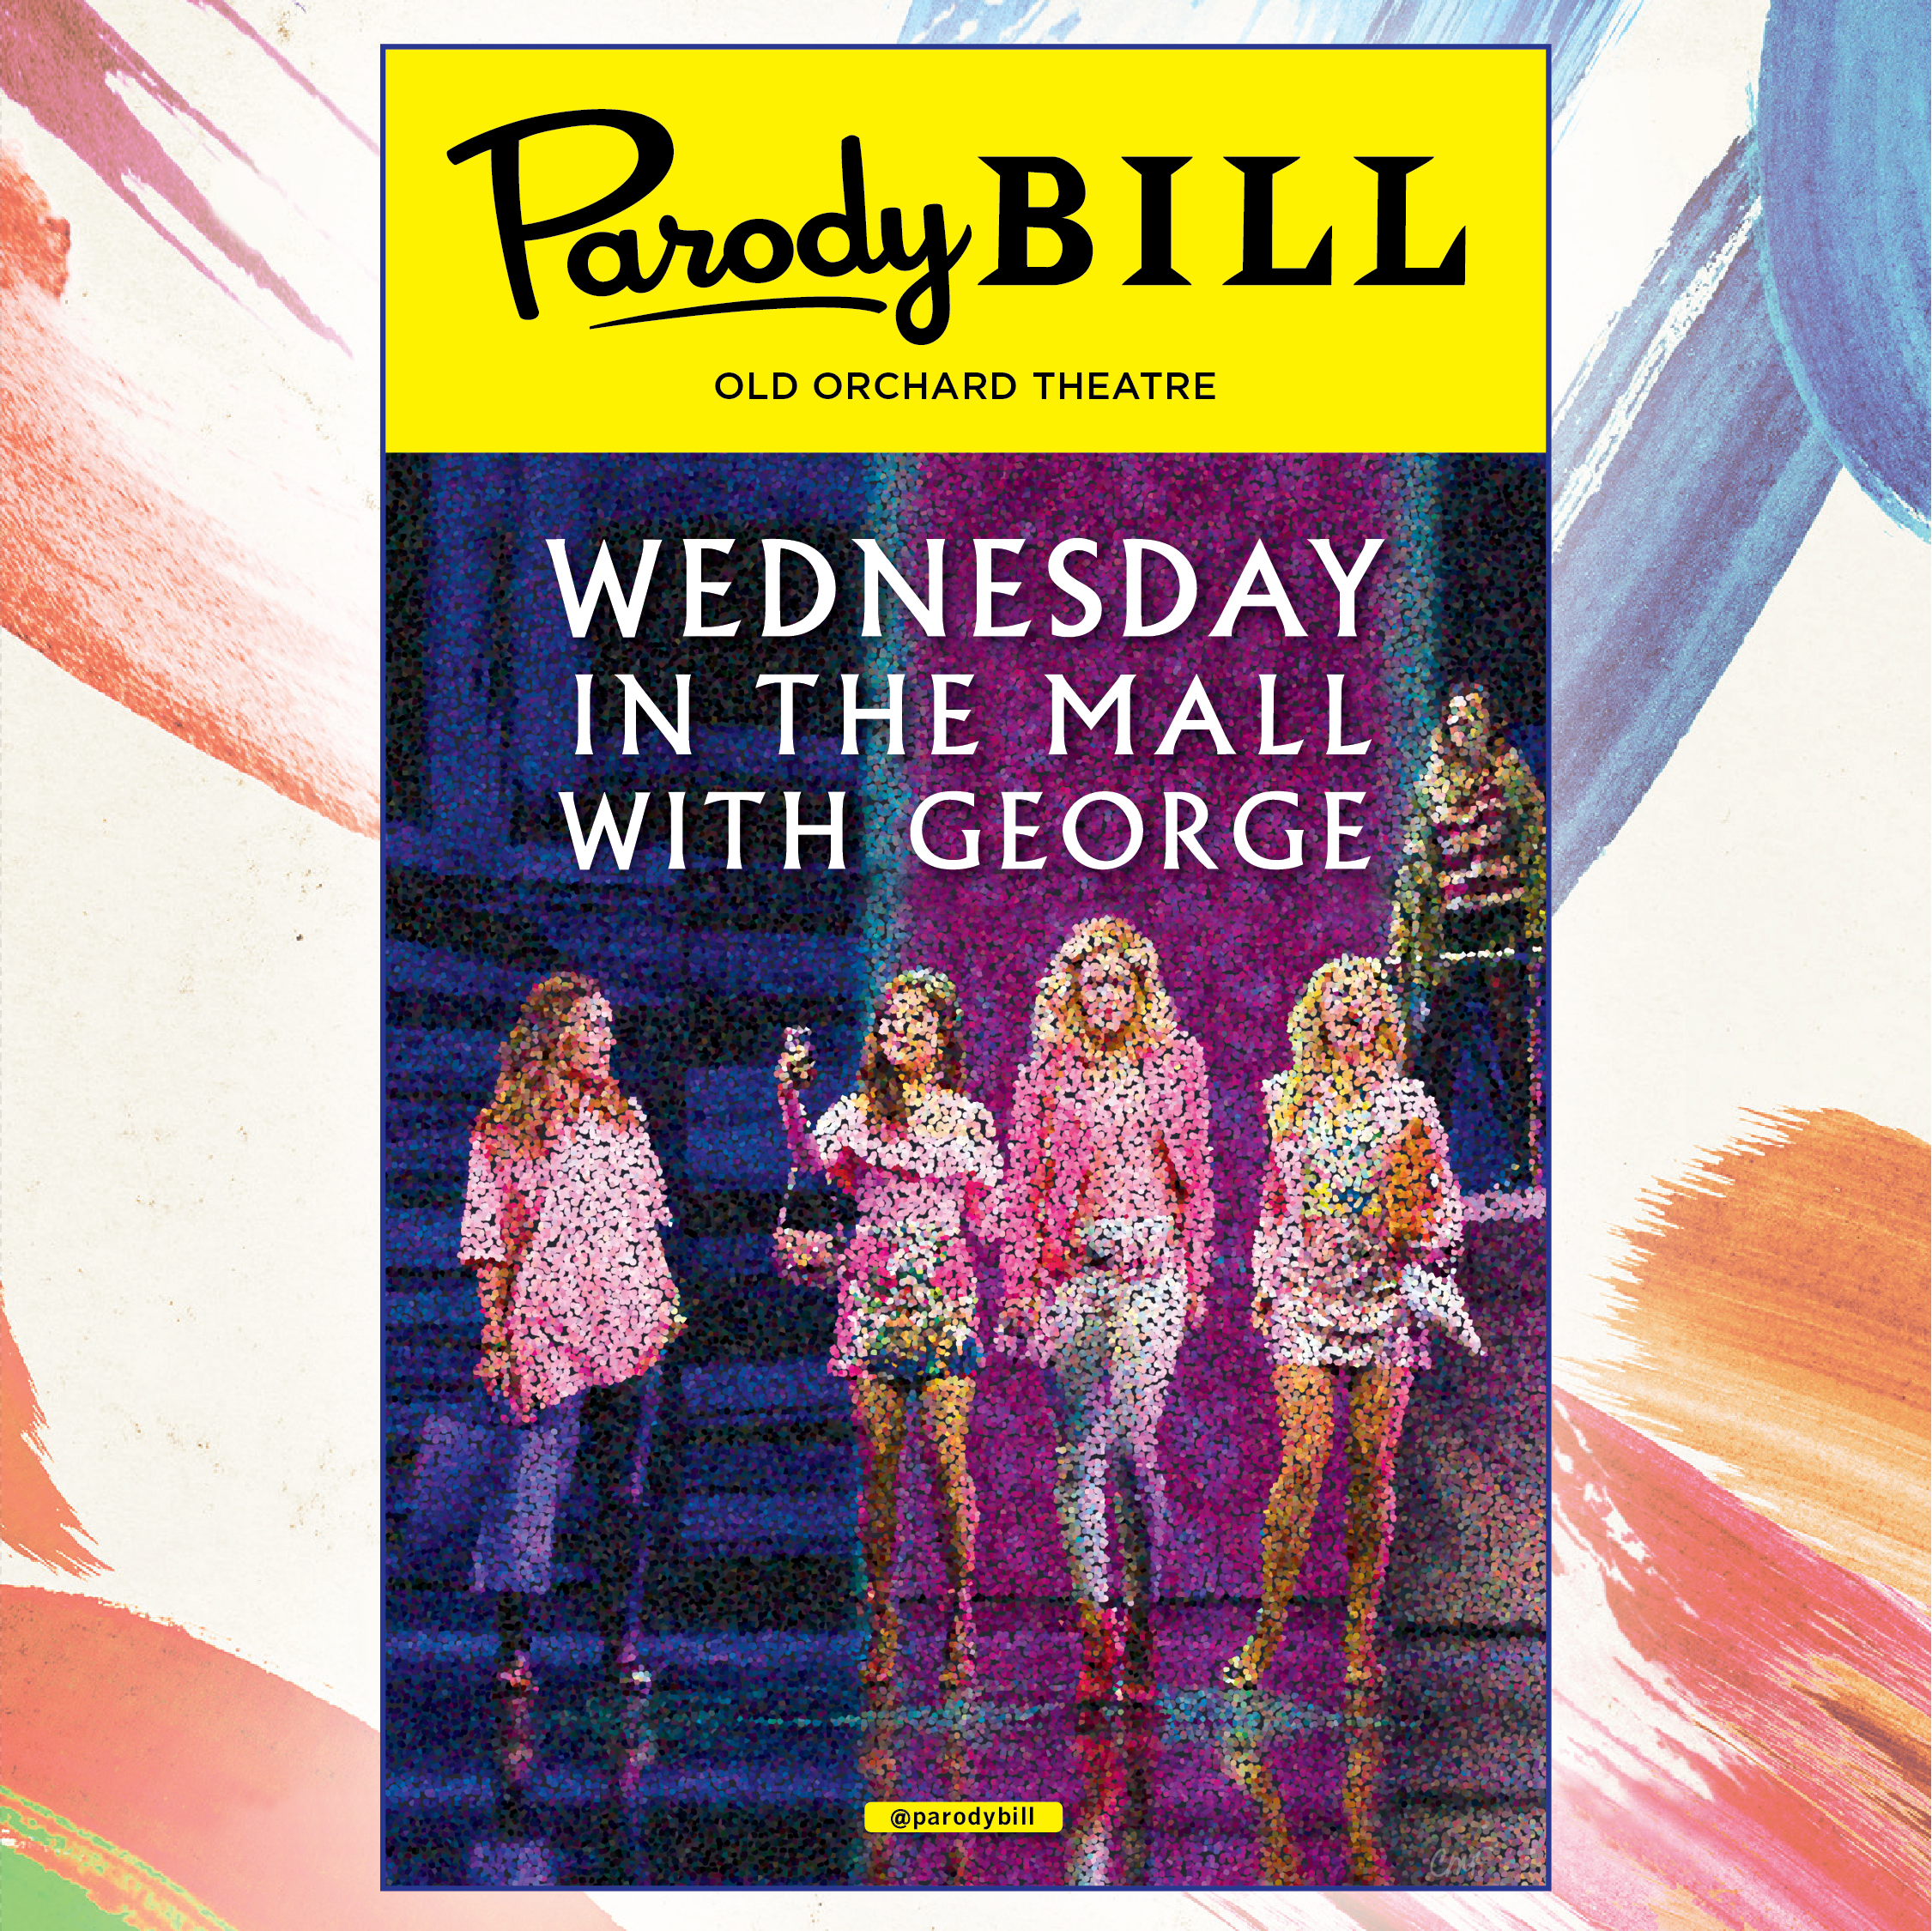 WEDNESDAY IN THE MALL WITH GEORGE